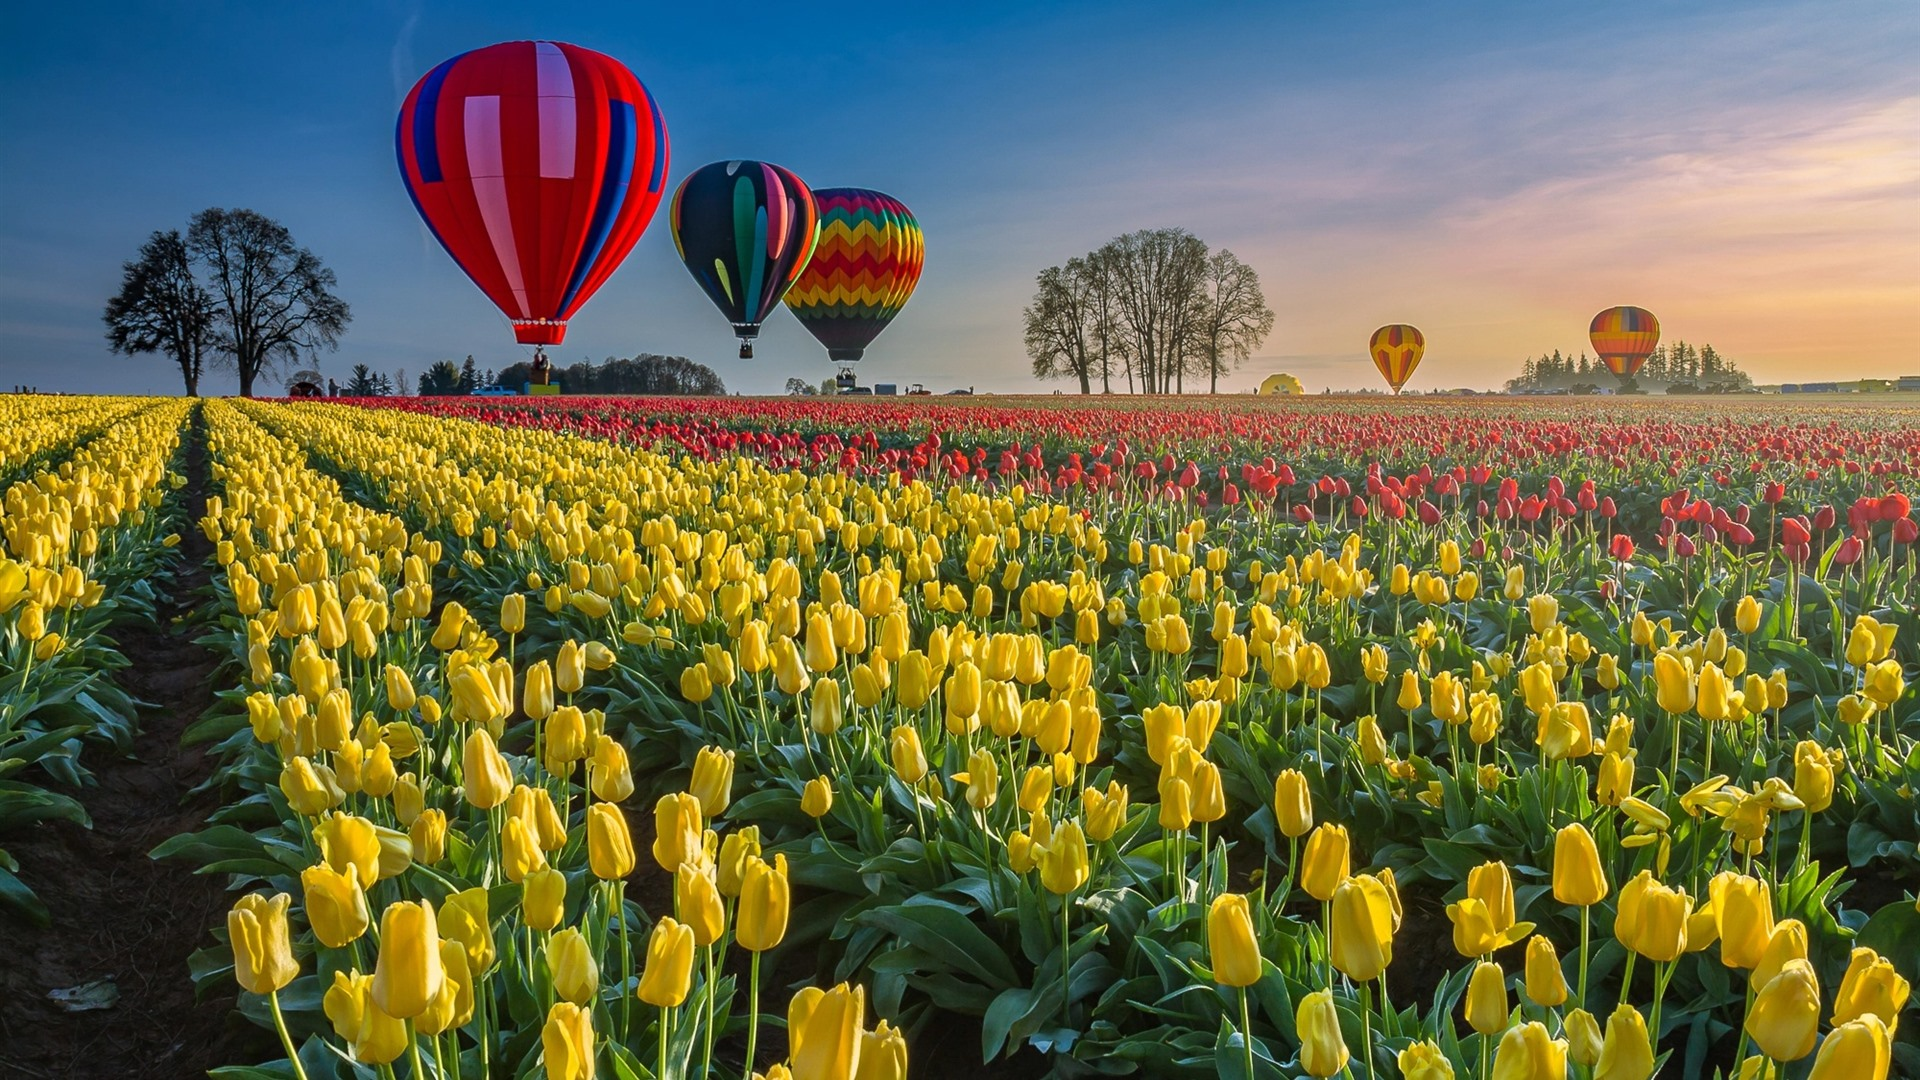 Tulips Field Hot Air Balloon 750x1334 Iphone 8 7 6 6s